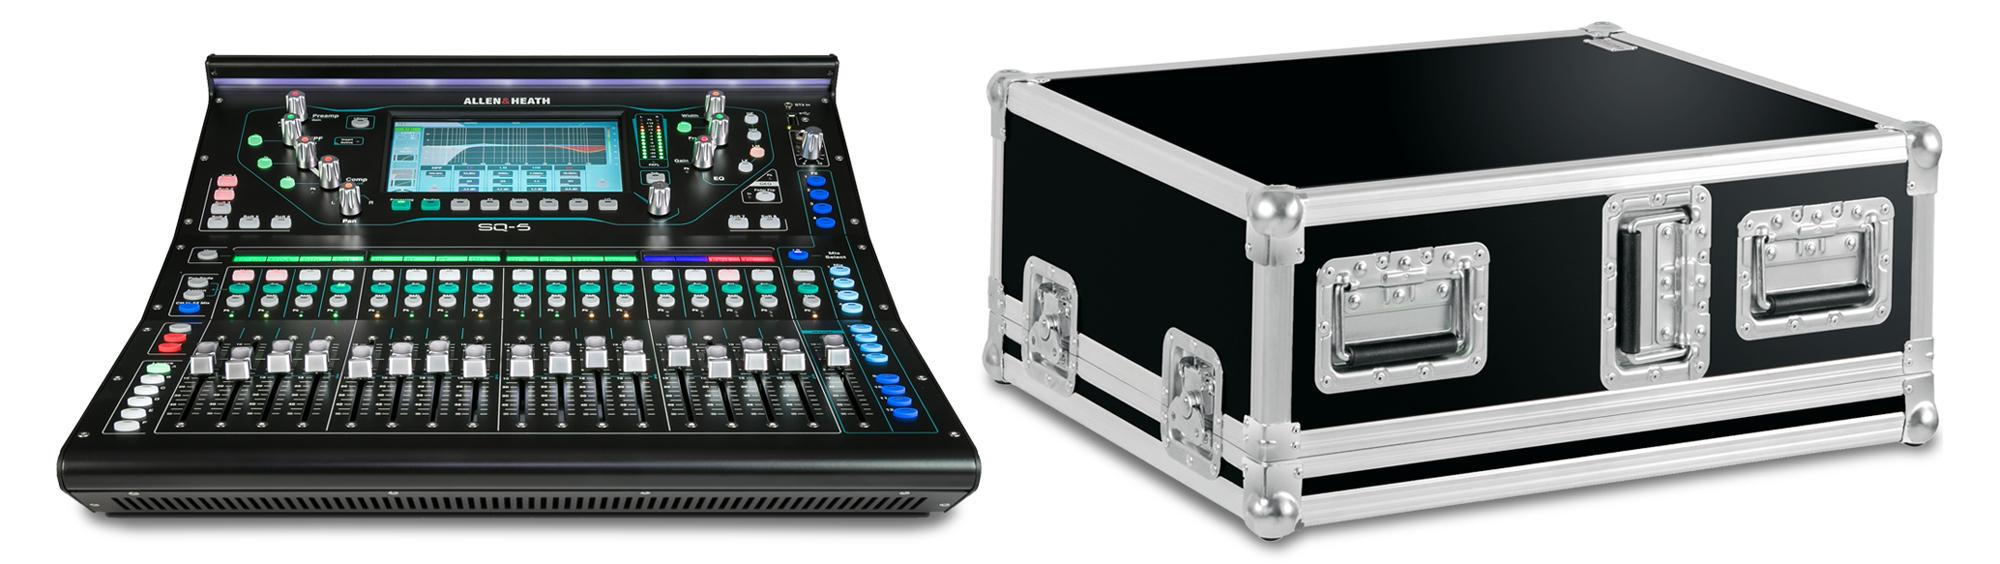 Allen Heath SQ 5 Digital Mischpult Set mit Case